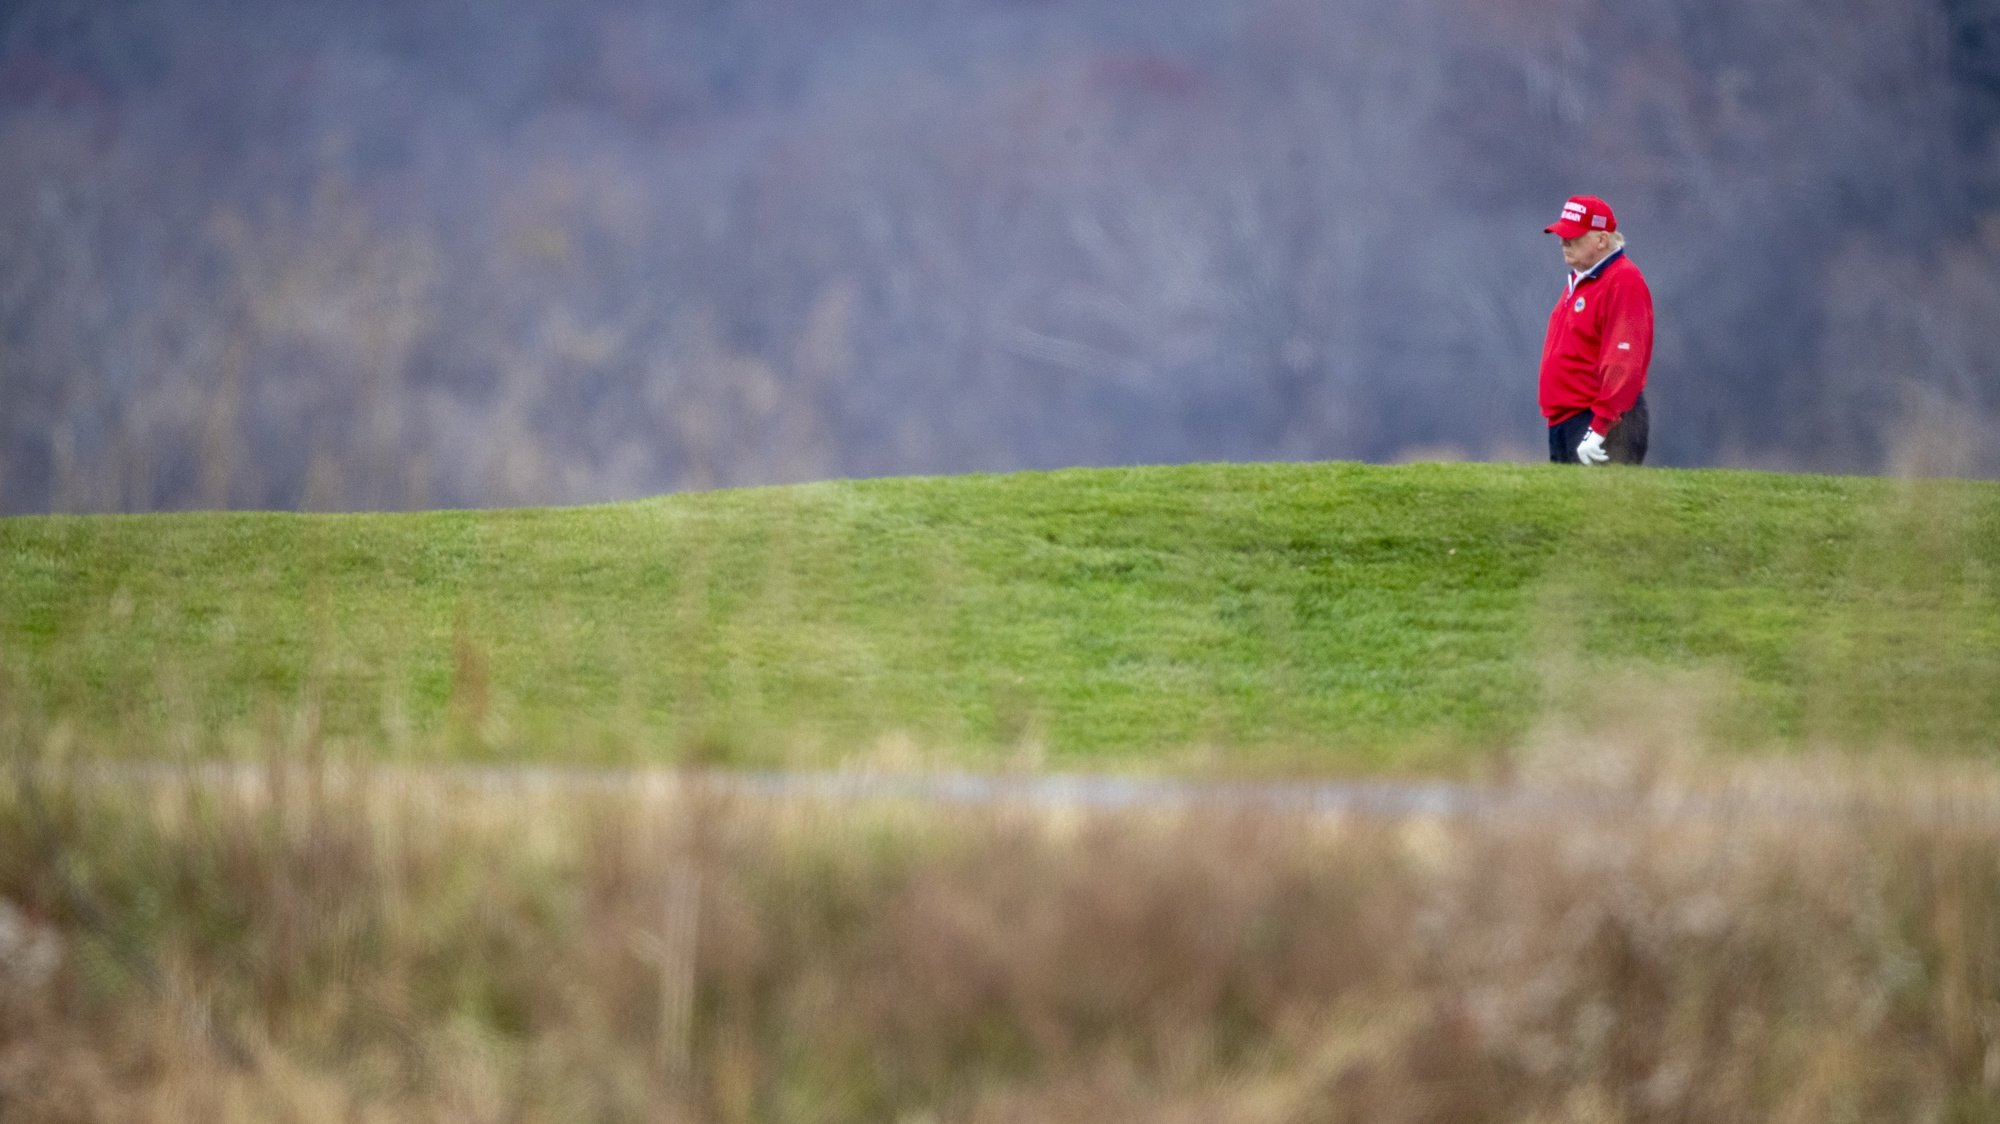 epa08847130 US President Donald J. Trump golfs at his Trump National Golf Club in Sterling, Virginia, USA, 27 November 2020. Following his round of golf President Trump boarded Marine One on the course and lifted off for Camp David where he will join his family for the weekend.  EPA/SHAWN THEW